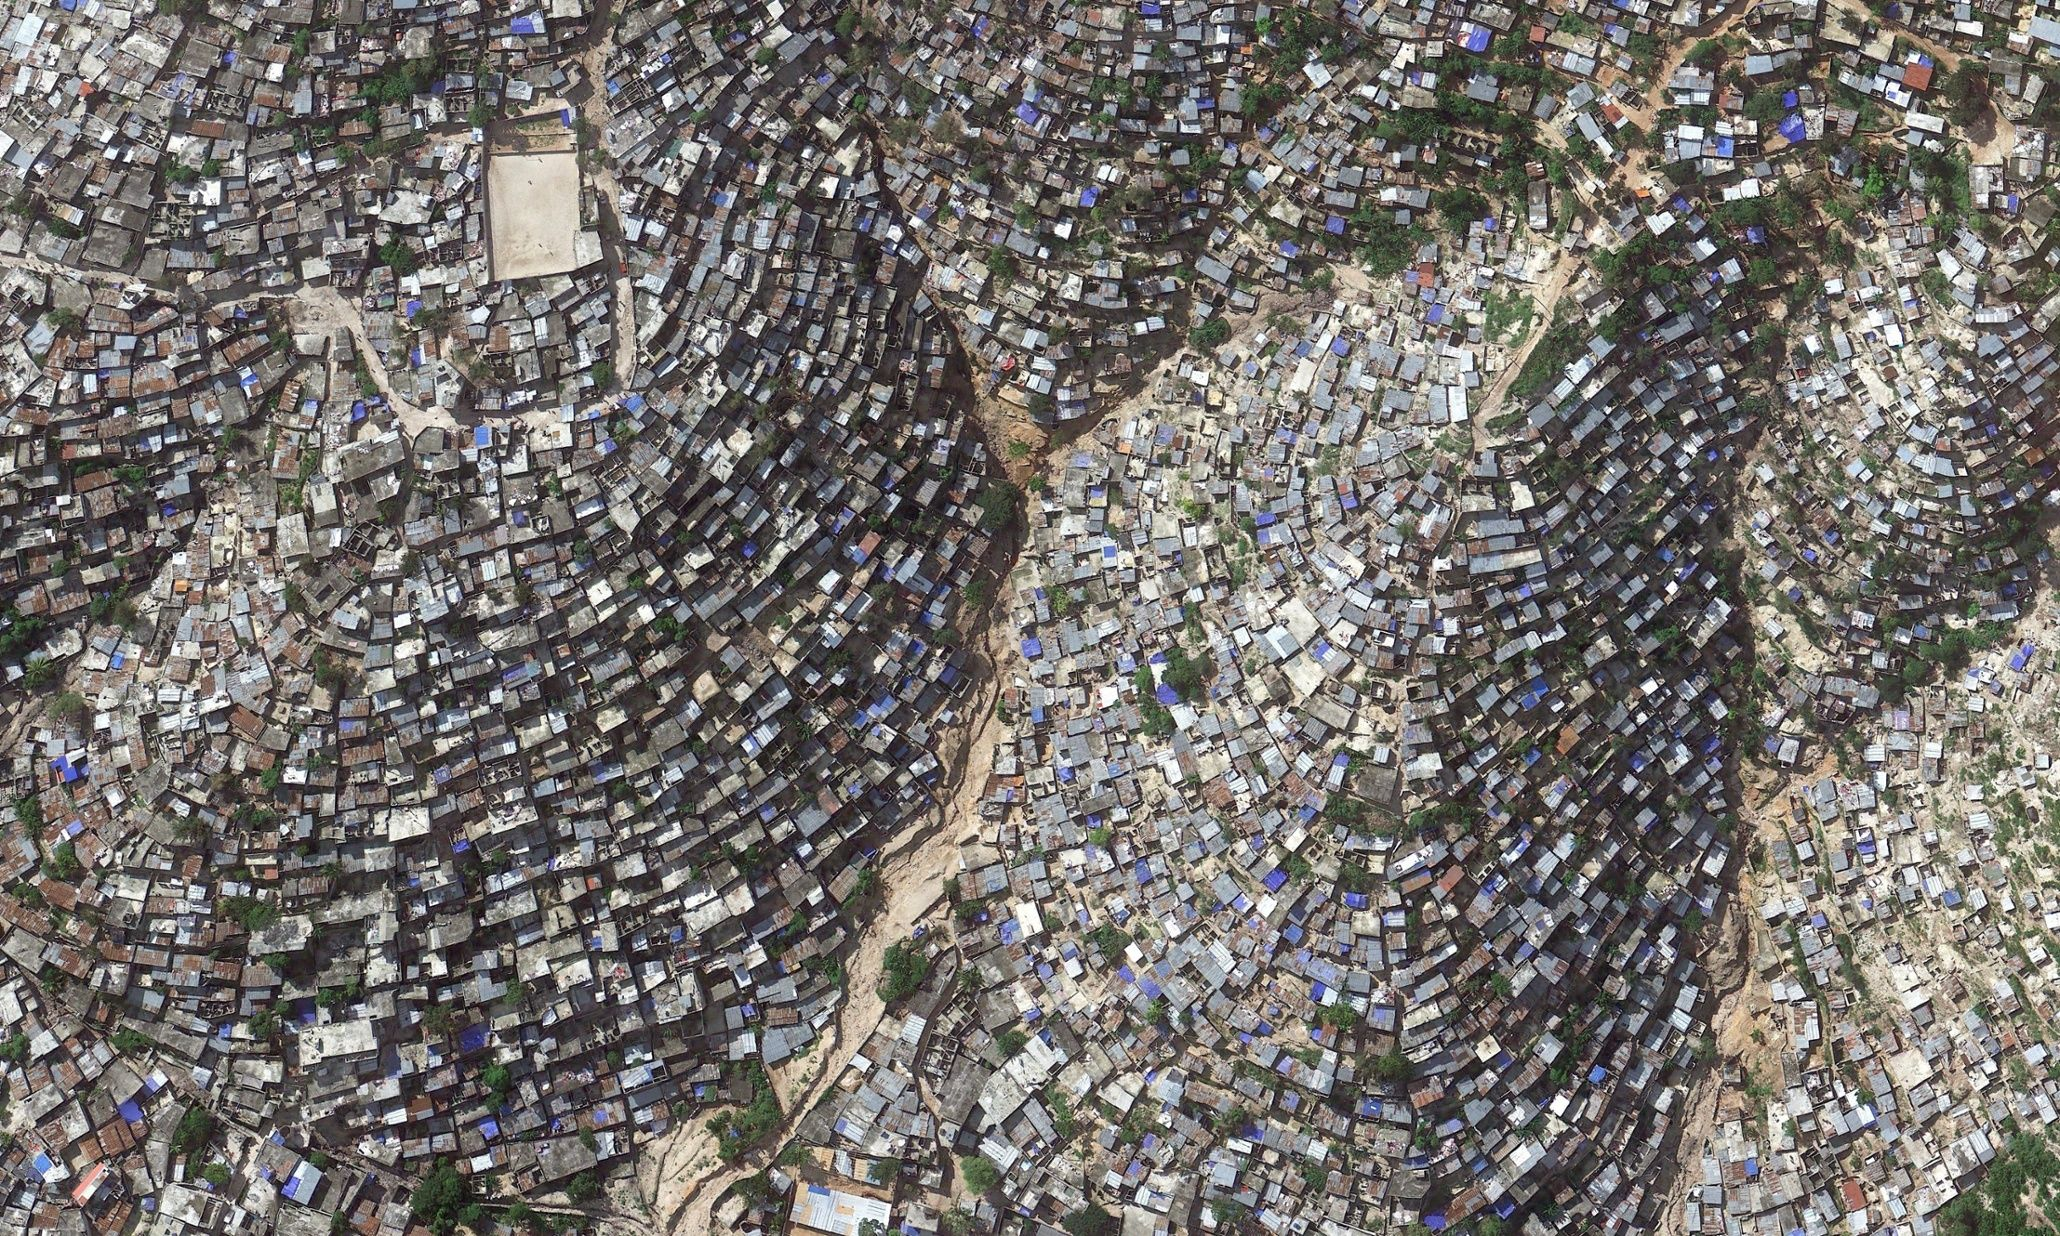 Overpopulation Overconsumption In Pictures Port Au Prince Haiti - Vol paris port au prince